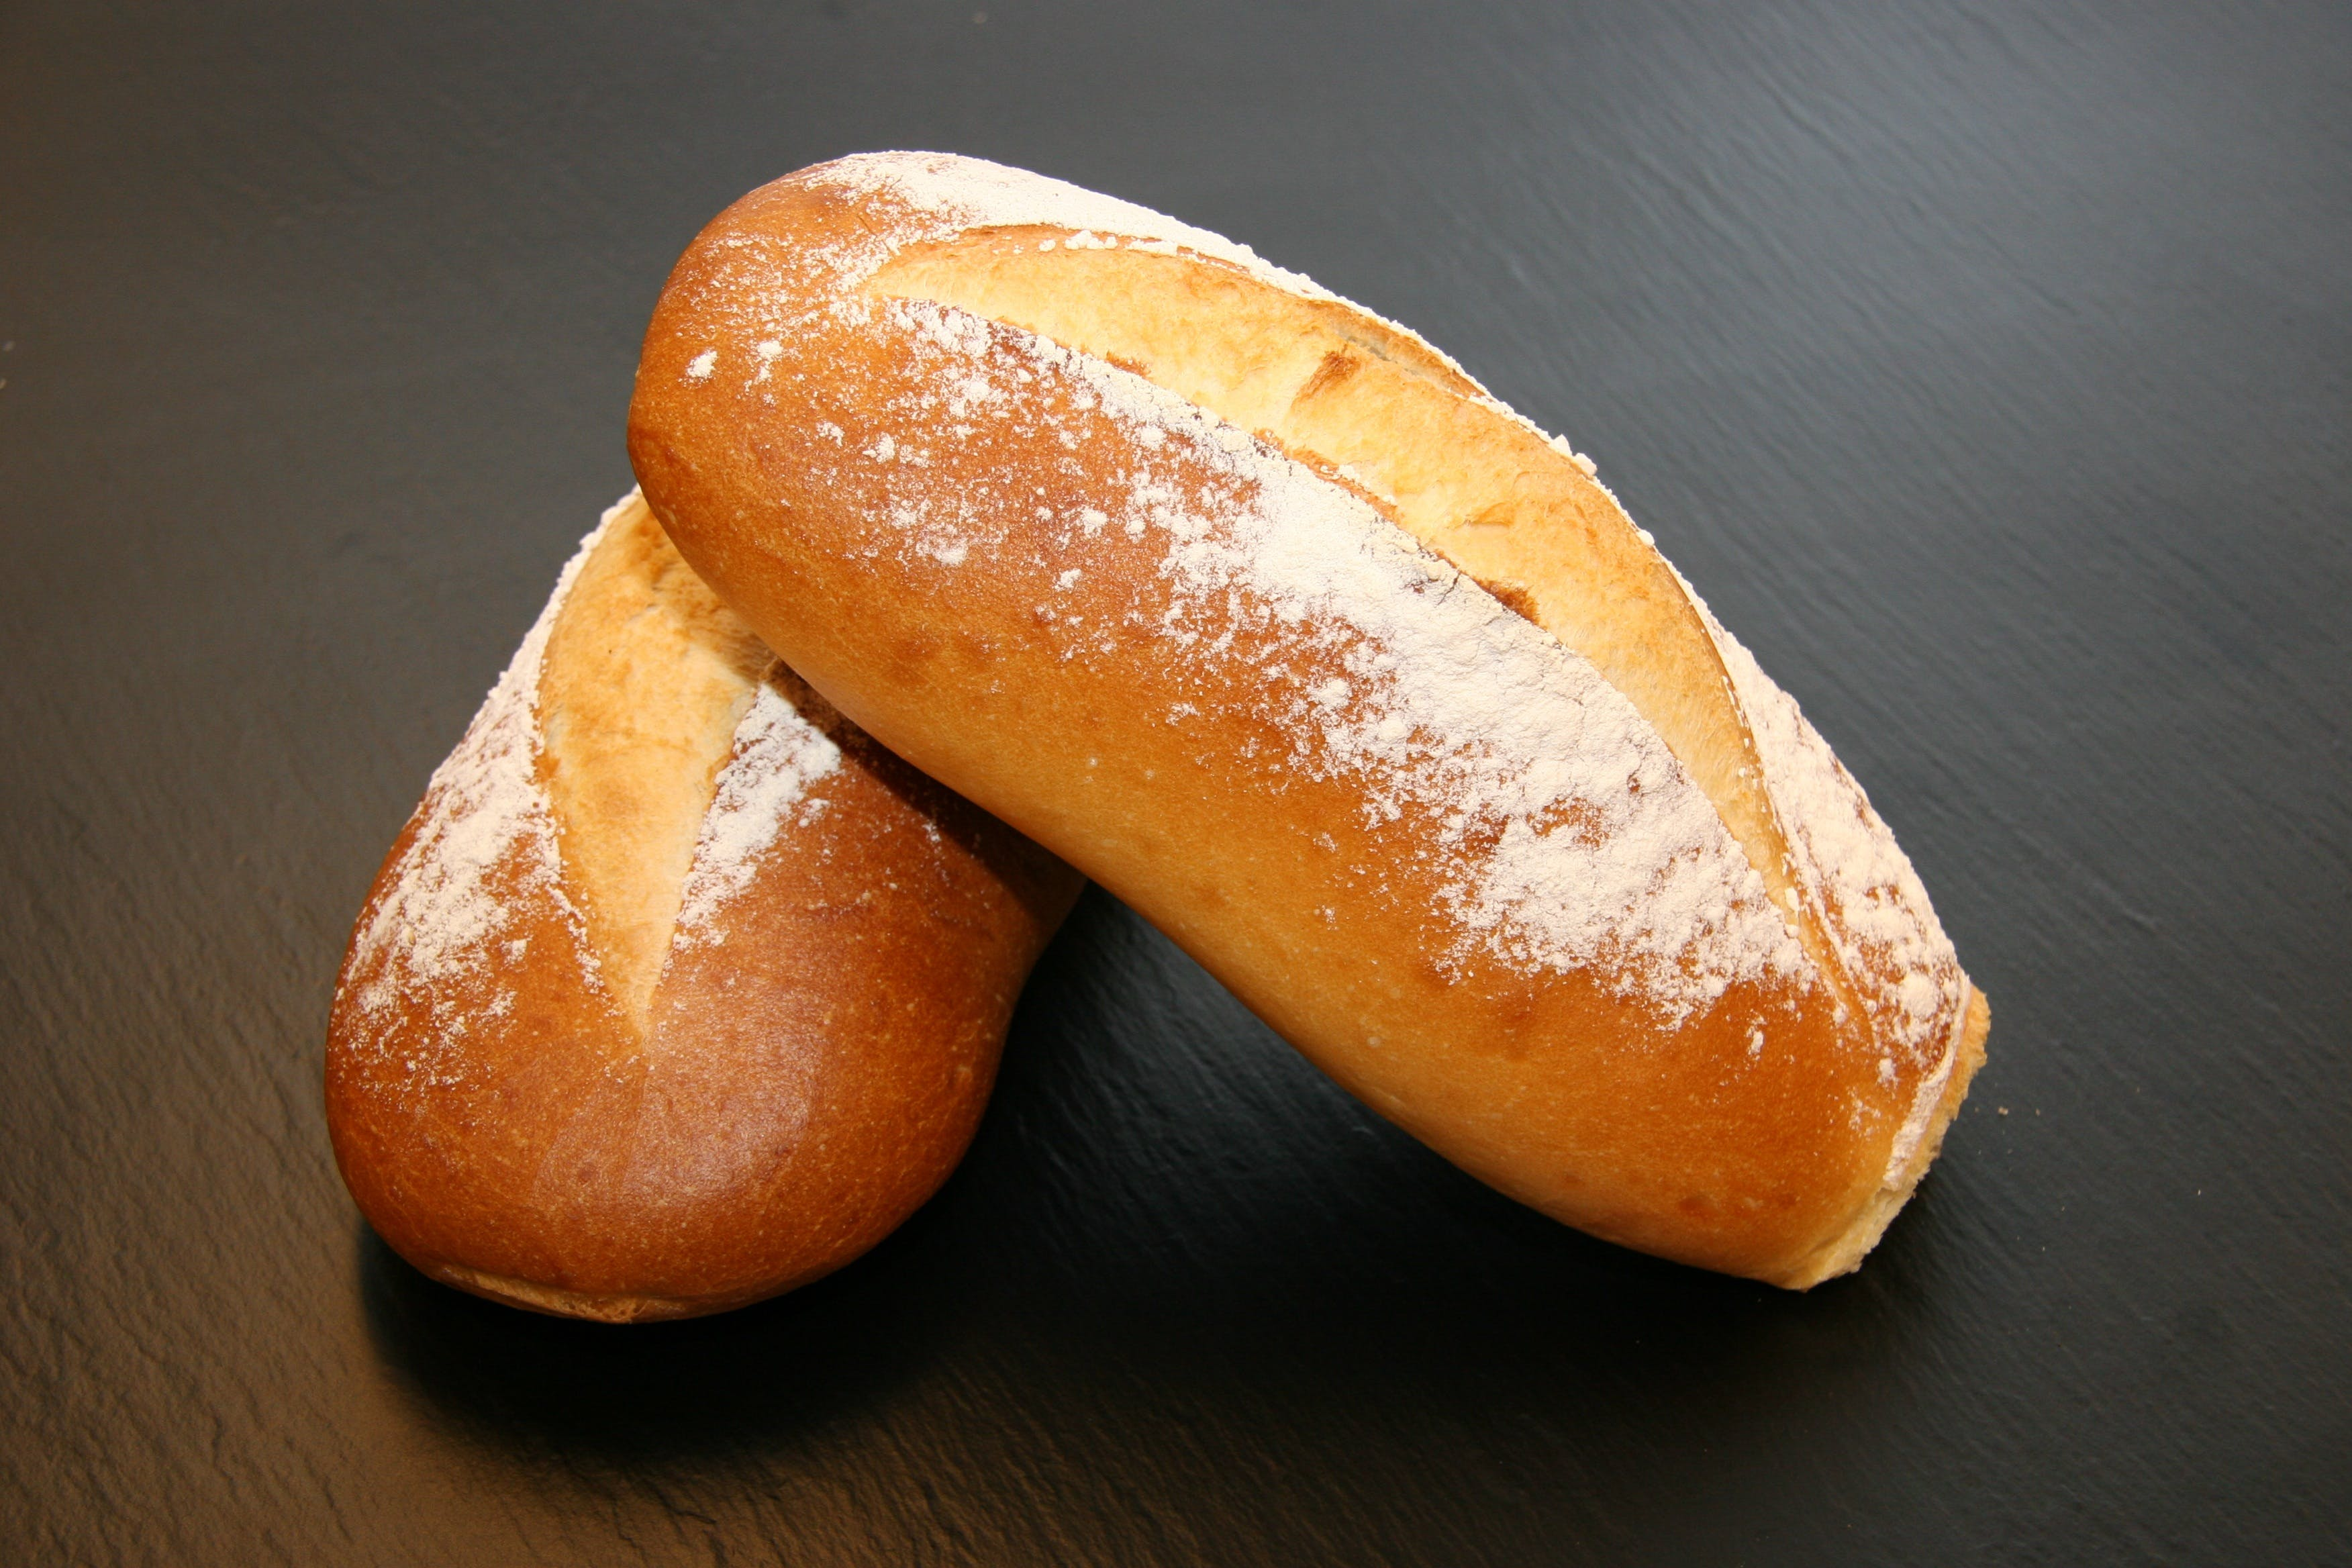 Two Baked Breads on Black Surface